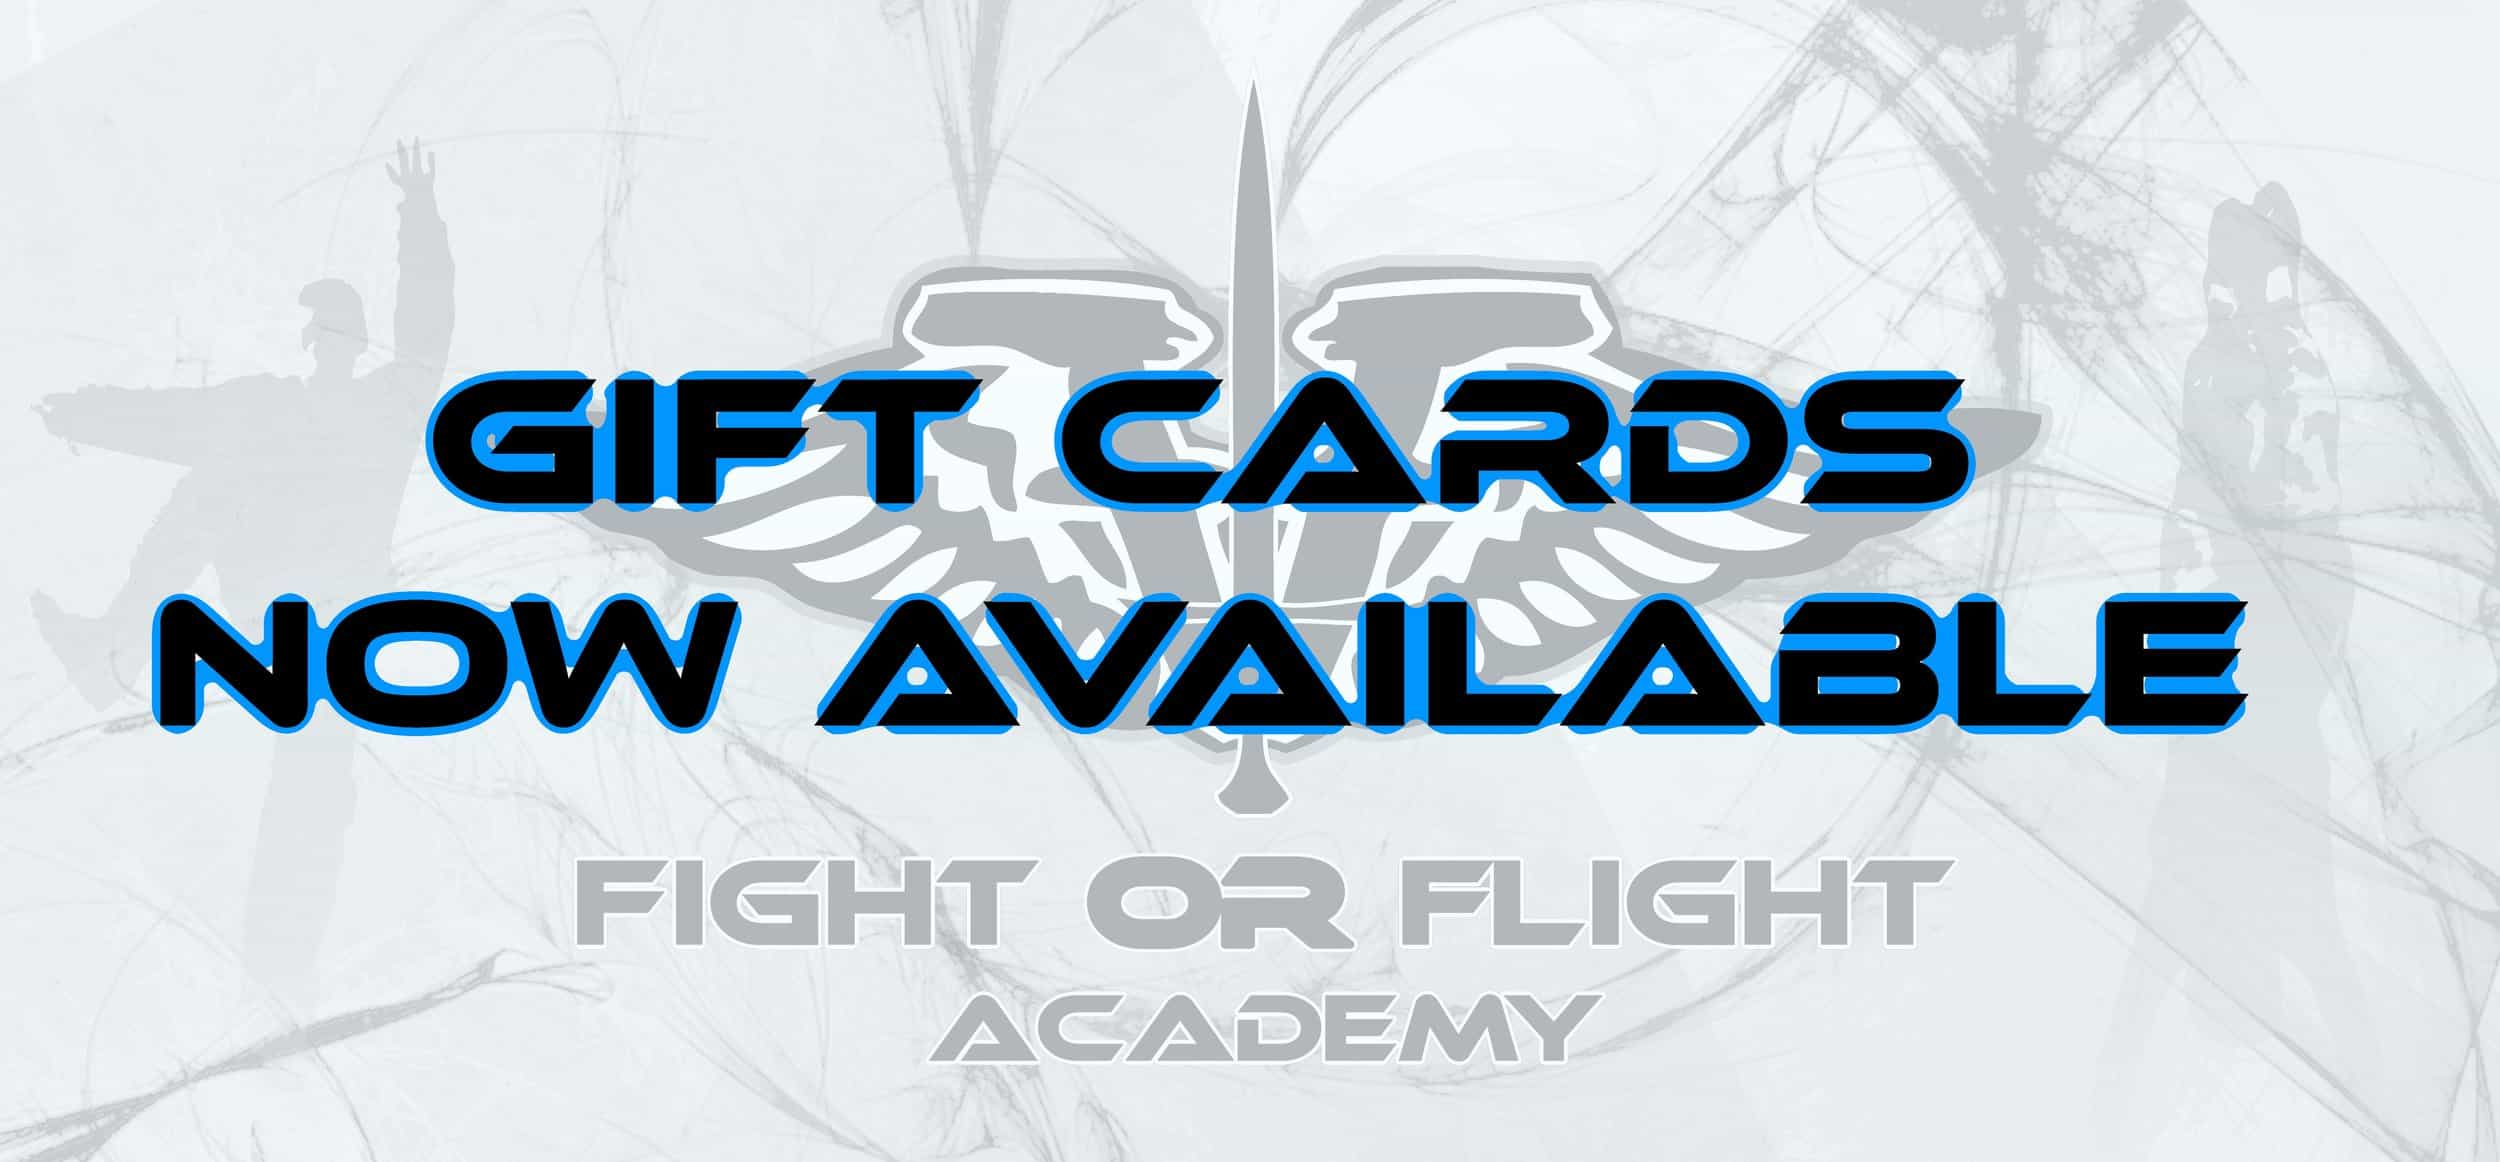 Fight or Flight Academy Gift Cards are now Available